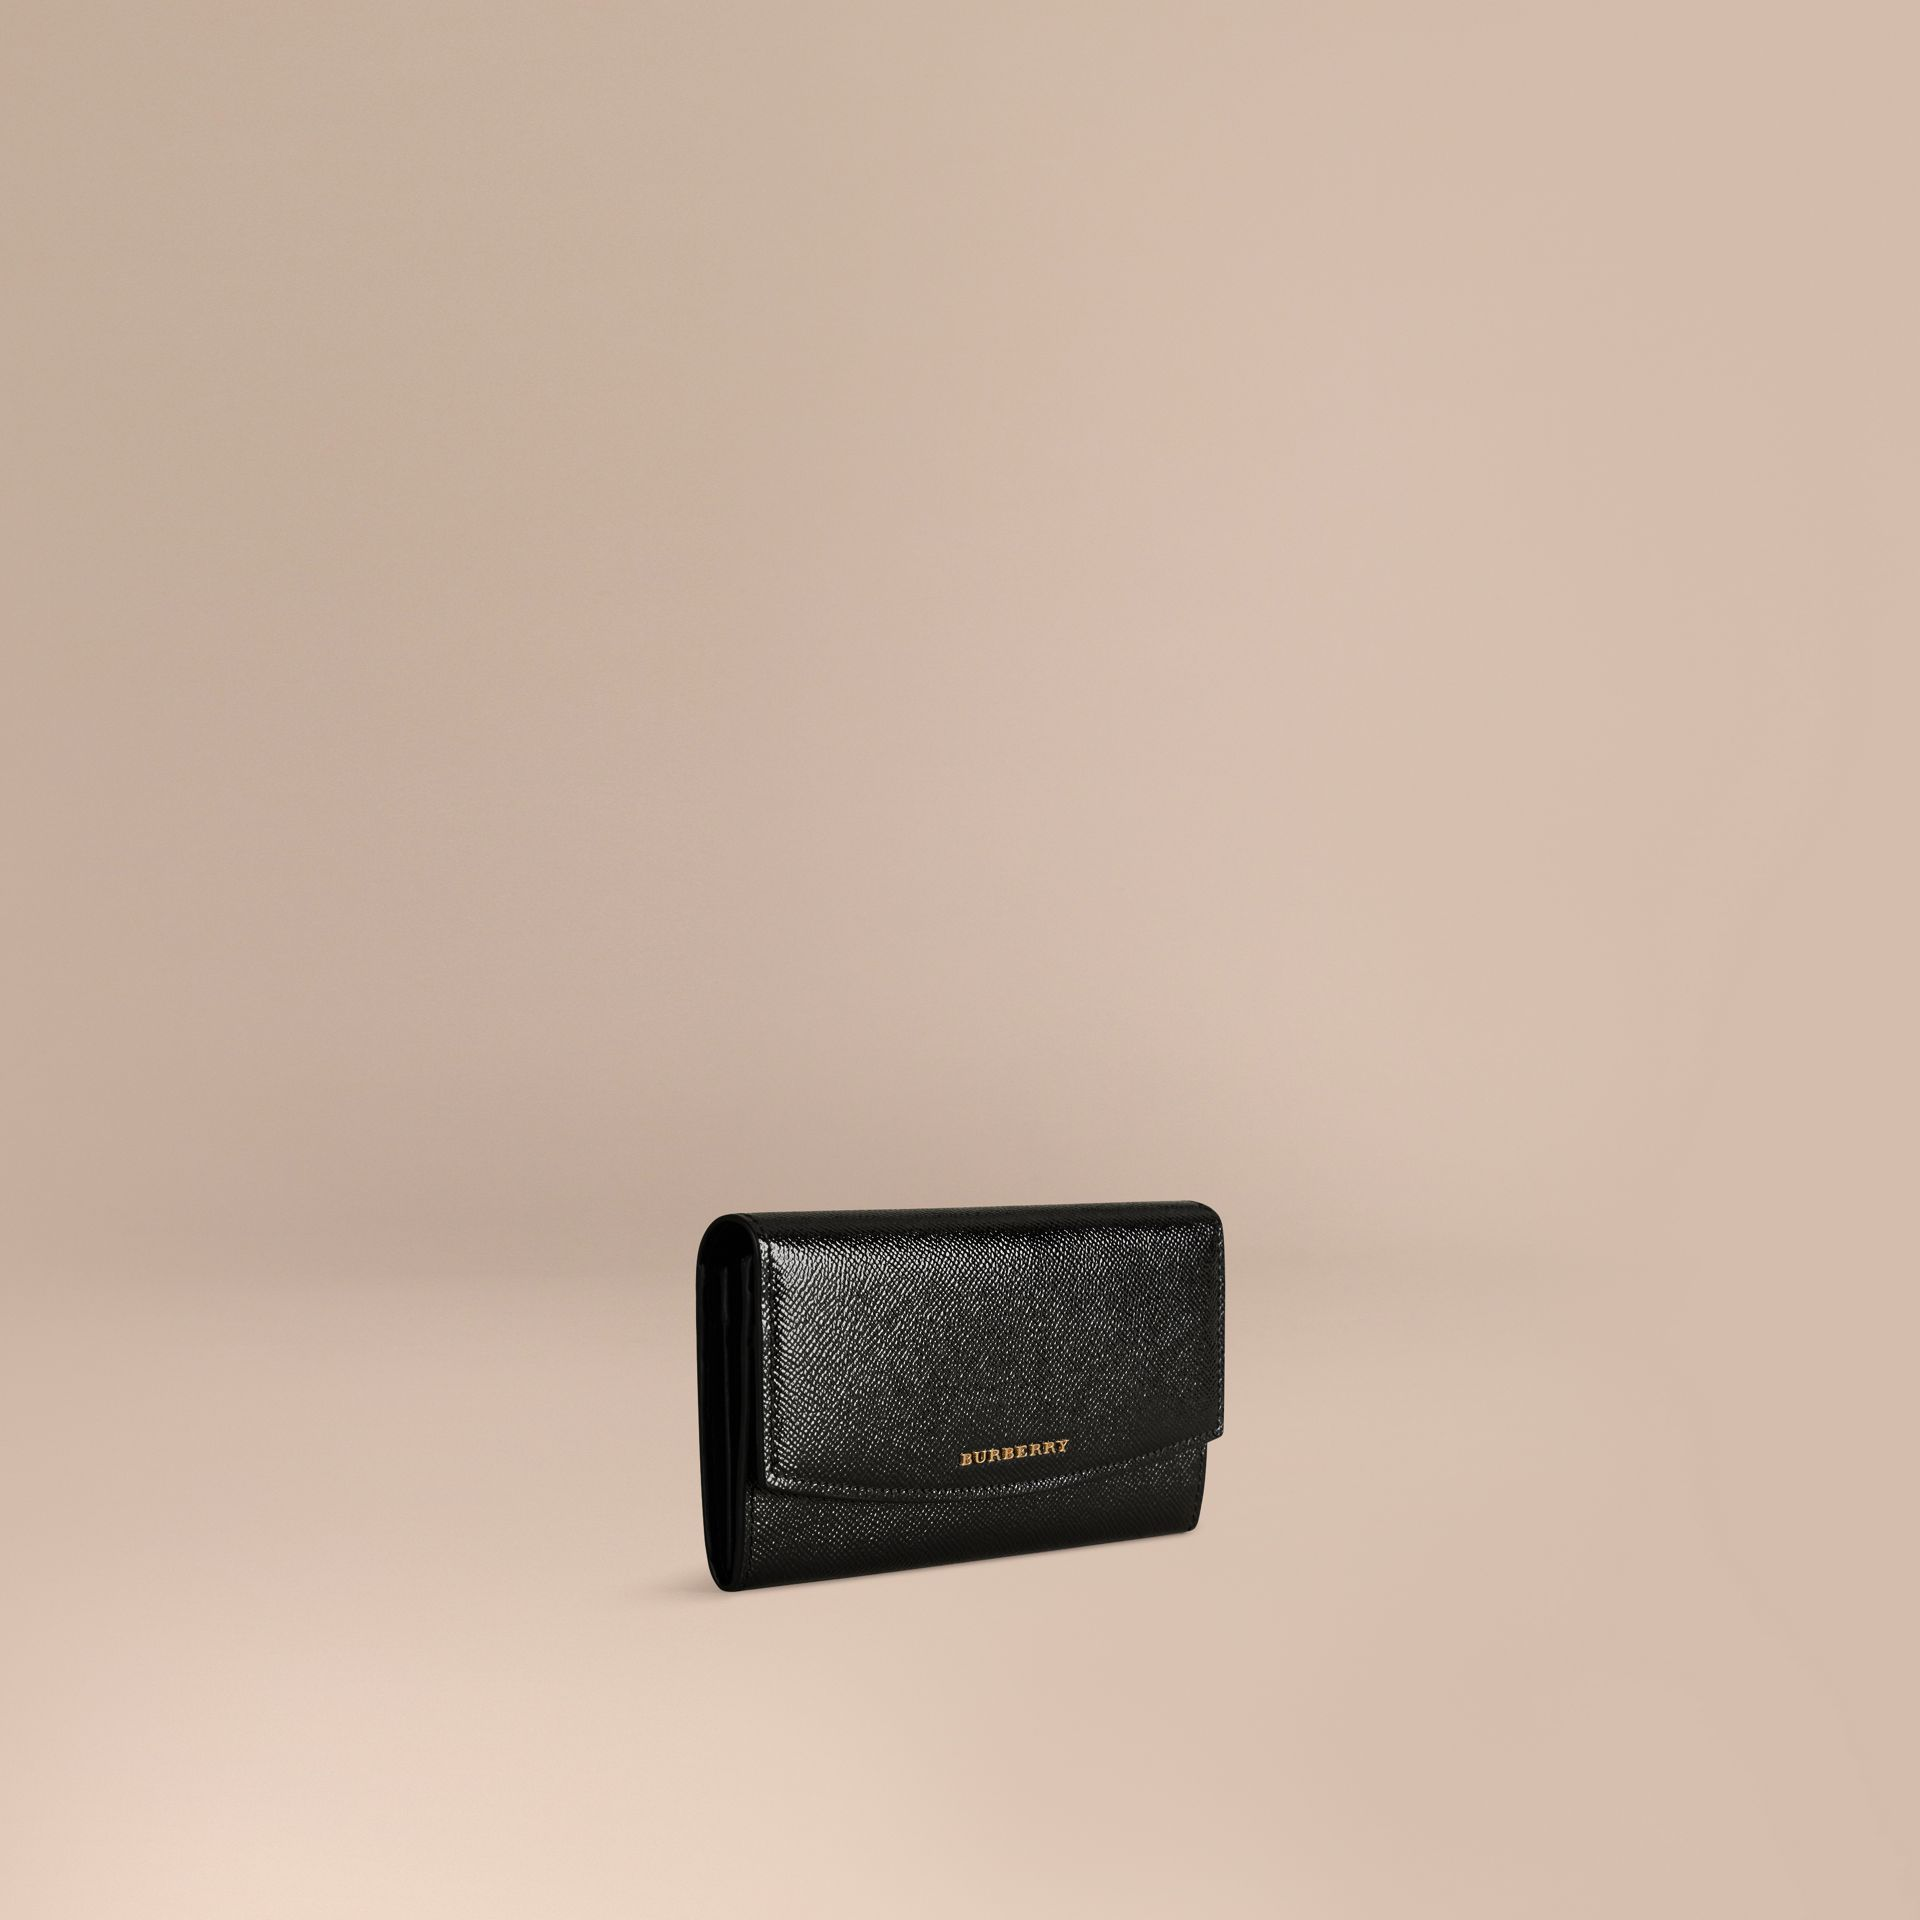 Black Patent London Leather Continental Wallet Black - gallery image 1